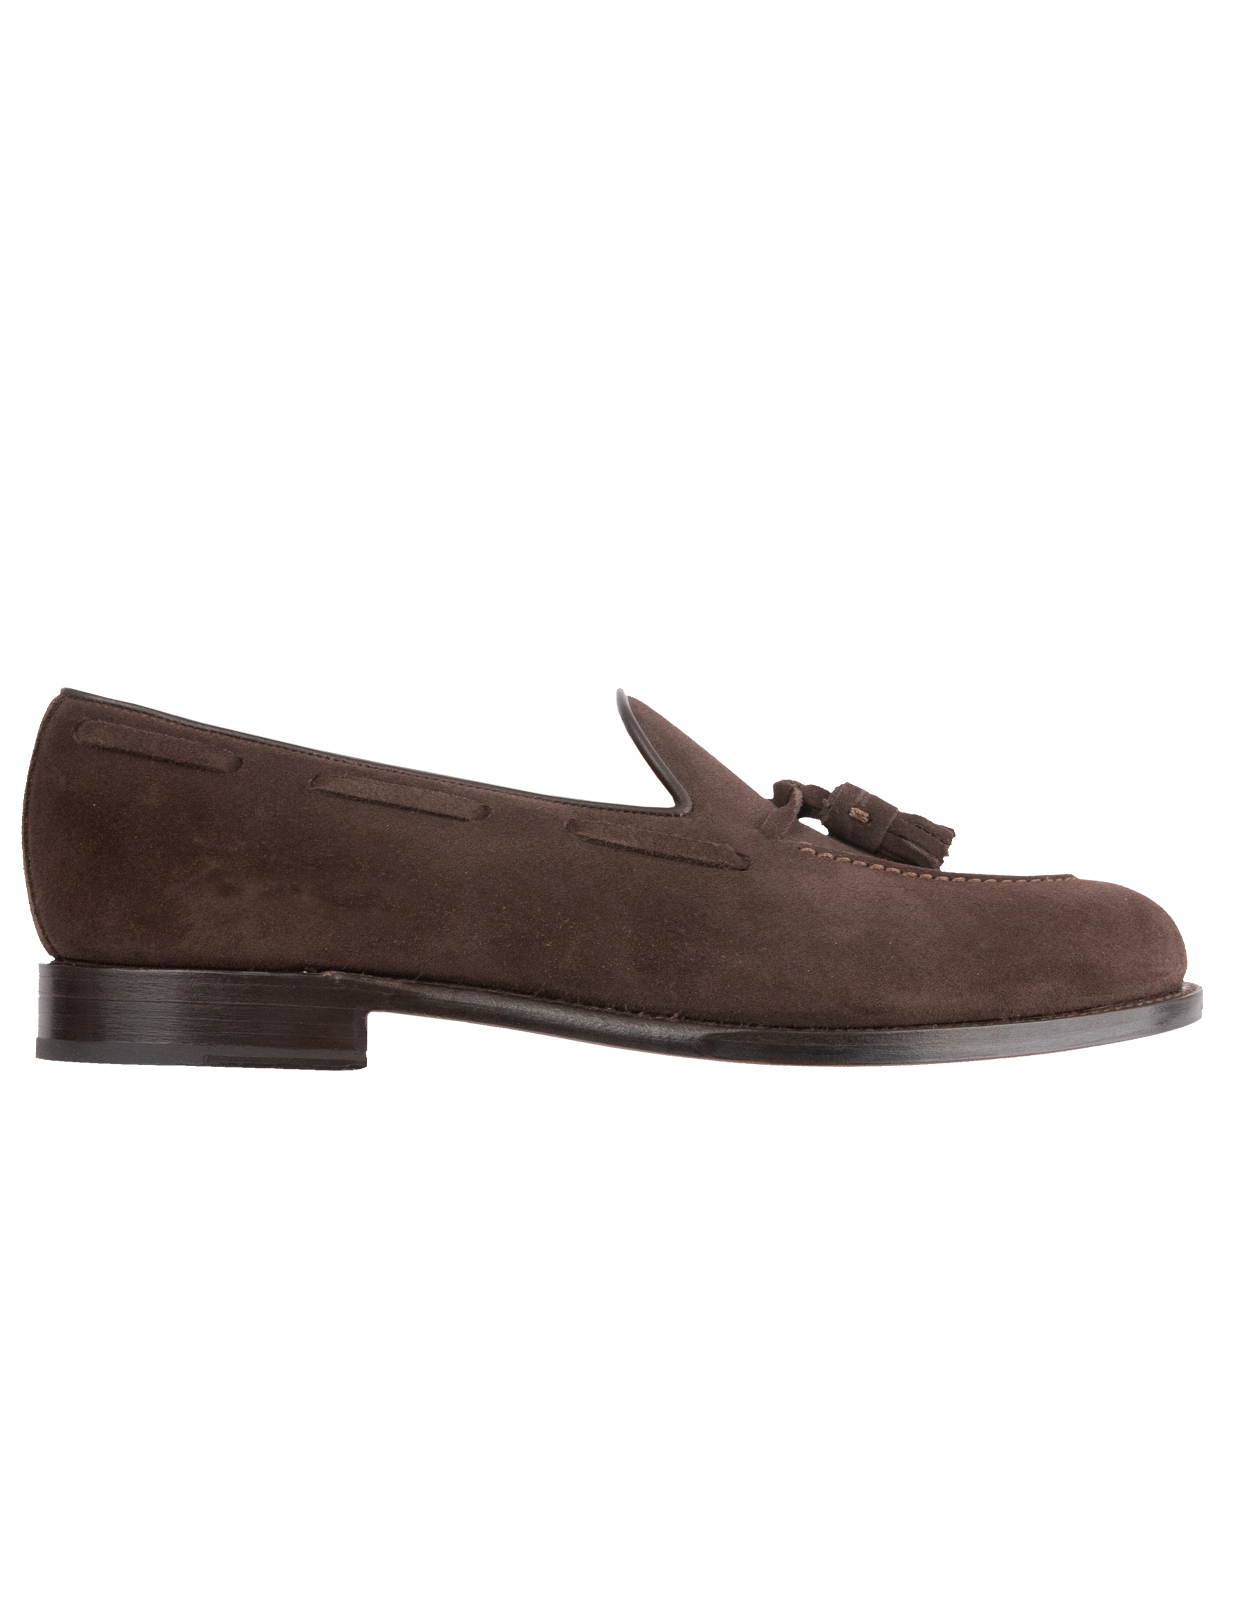 Tassel Loafers Suede Bitter Chocolate Stl 7.5